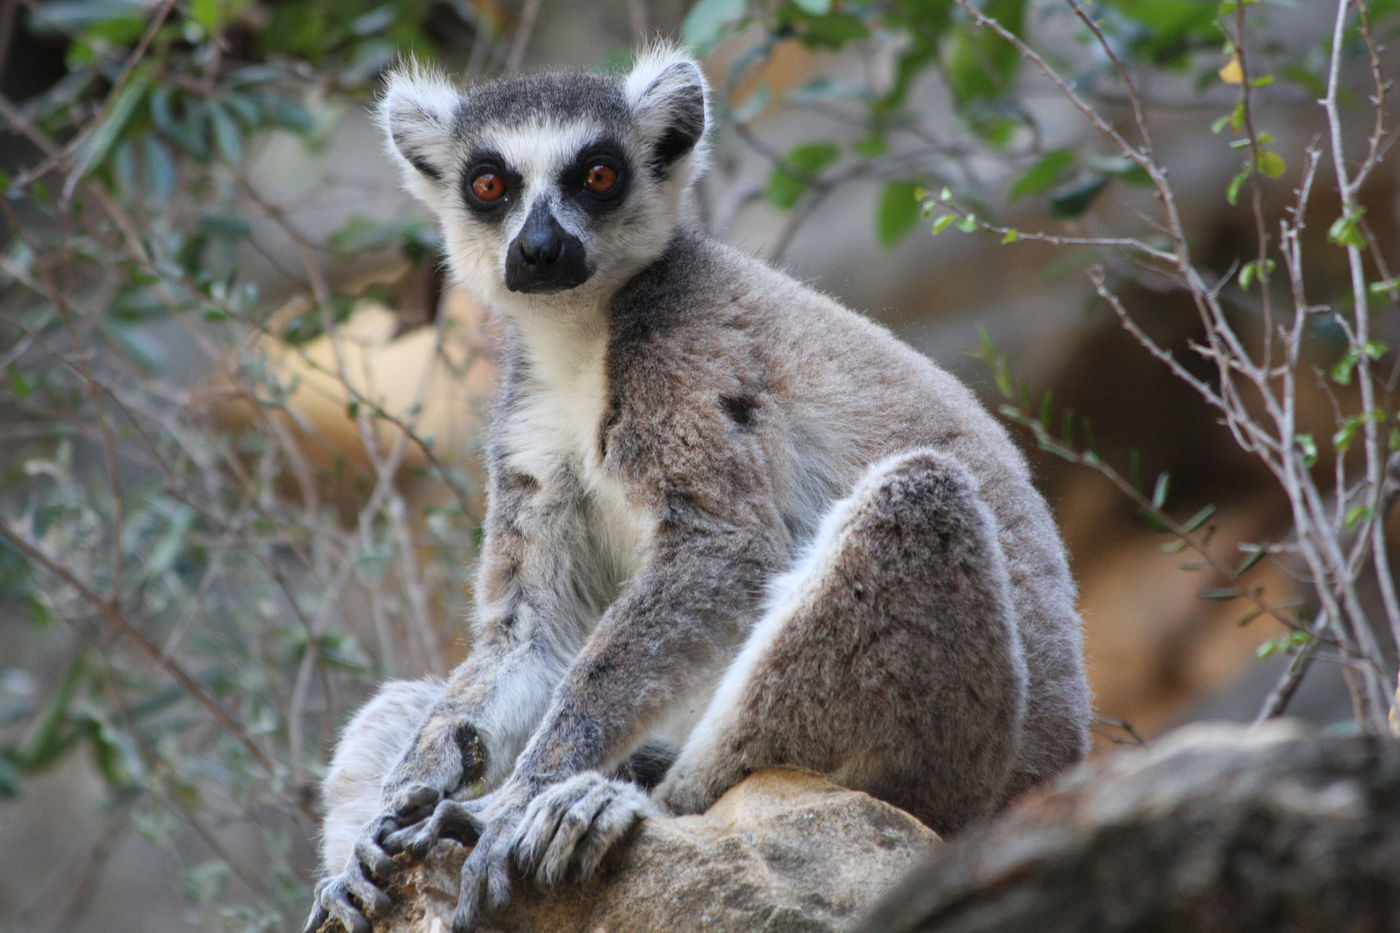 A lemur perched on a rock, seemingly staring right at the camera with golden-brown eyes. Its fur is mostly gray with some black details and white stomach and facial markings. There are branches with small green leaves behind the lemur.